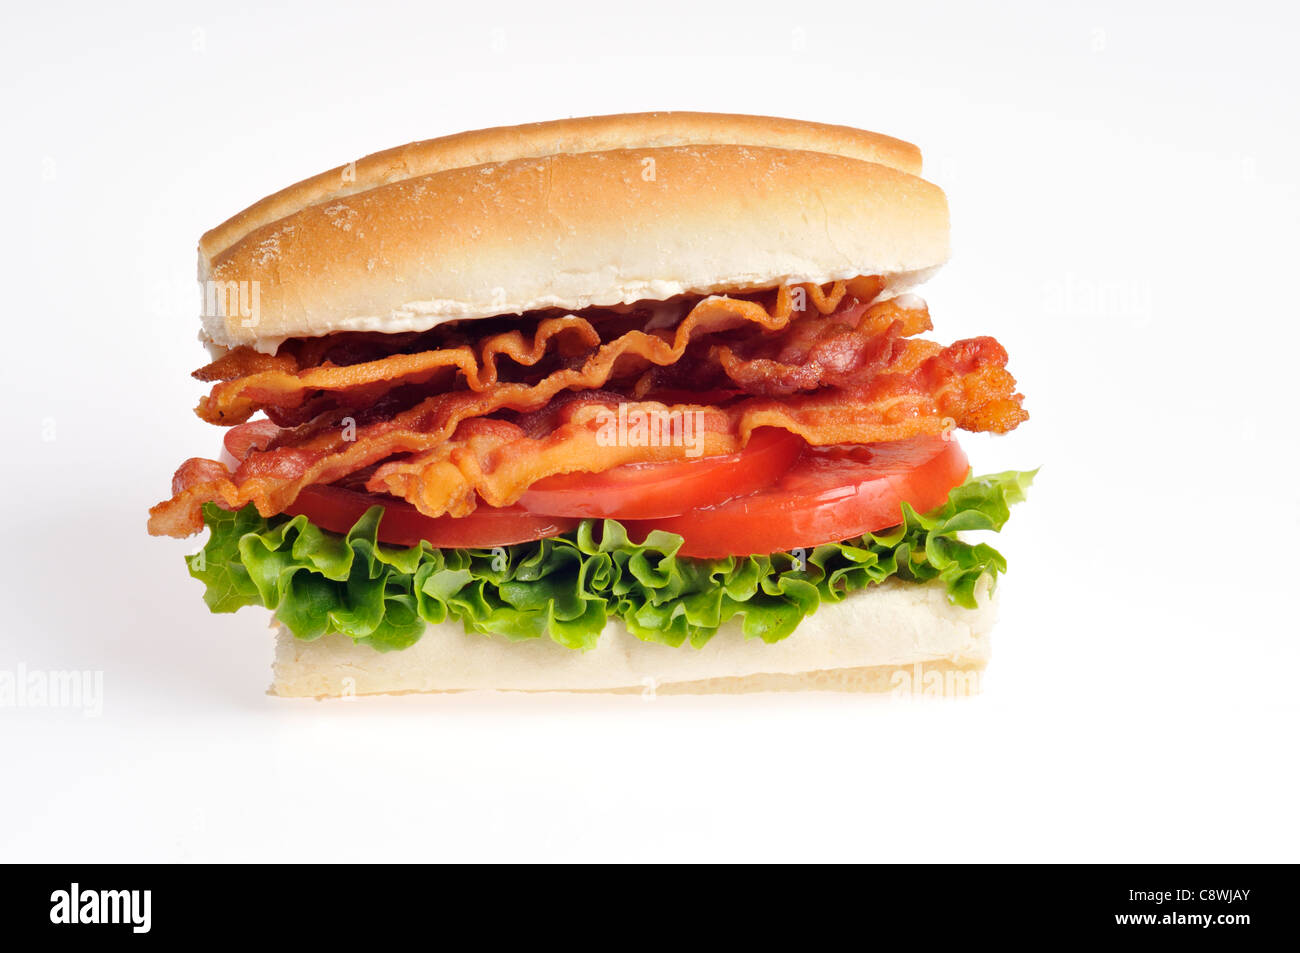 Bacon Lettuce and Tomato BLT sandwich in a roll on white background cutout. - Stock Image